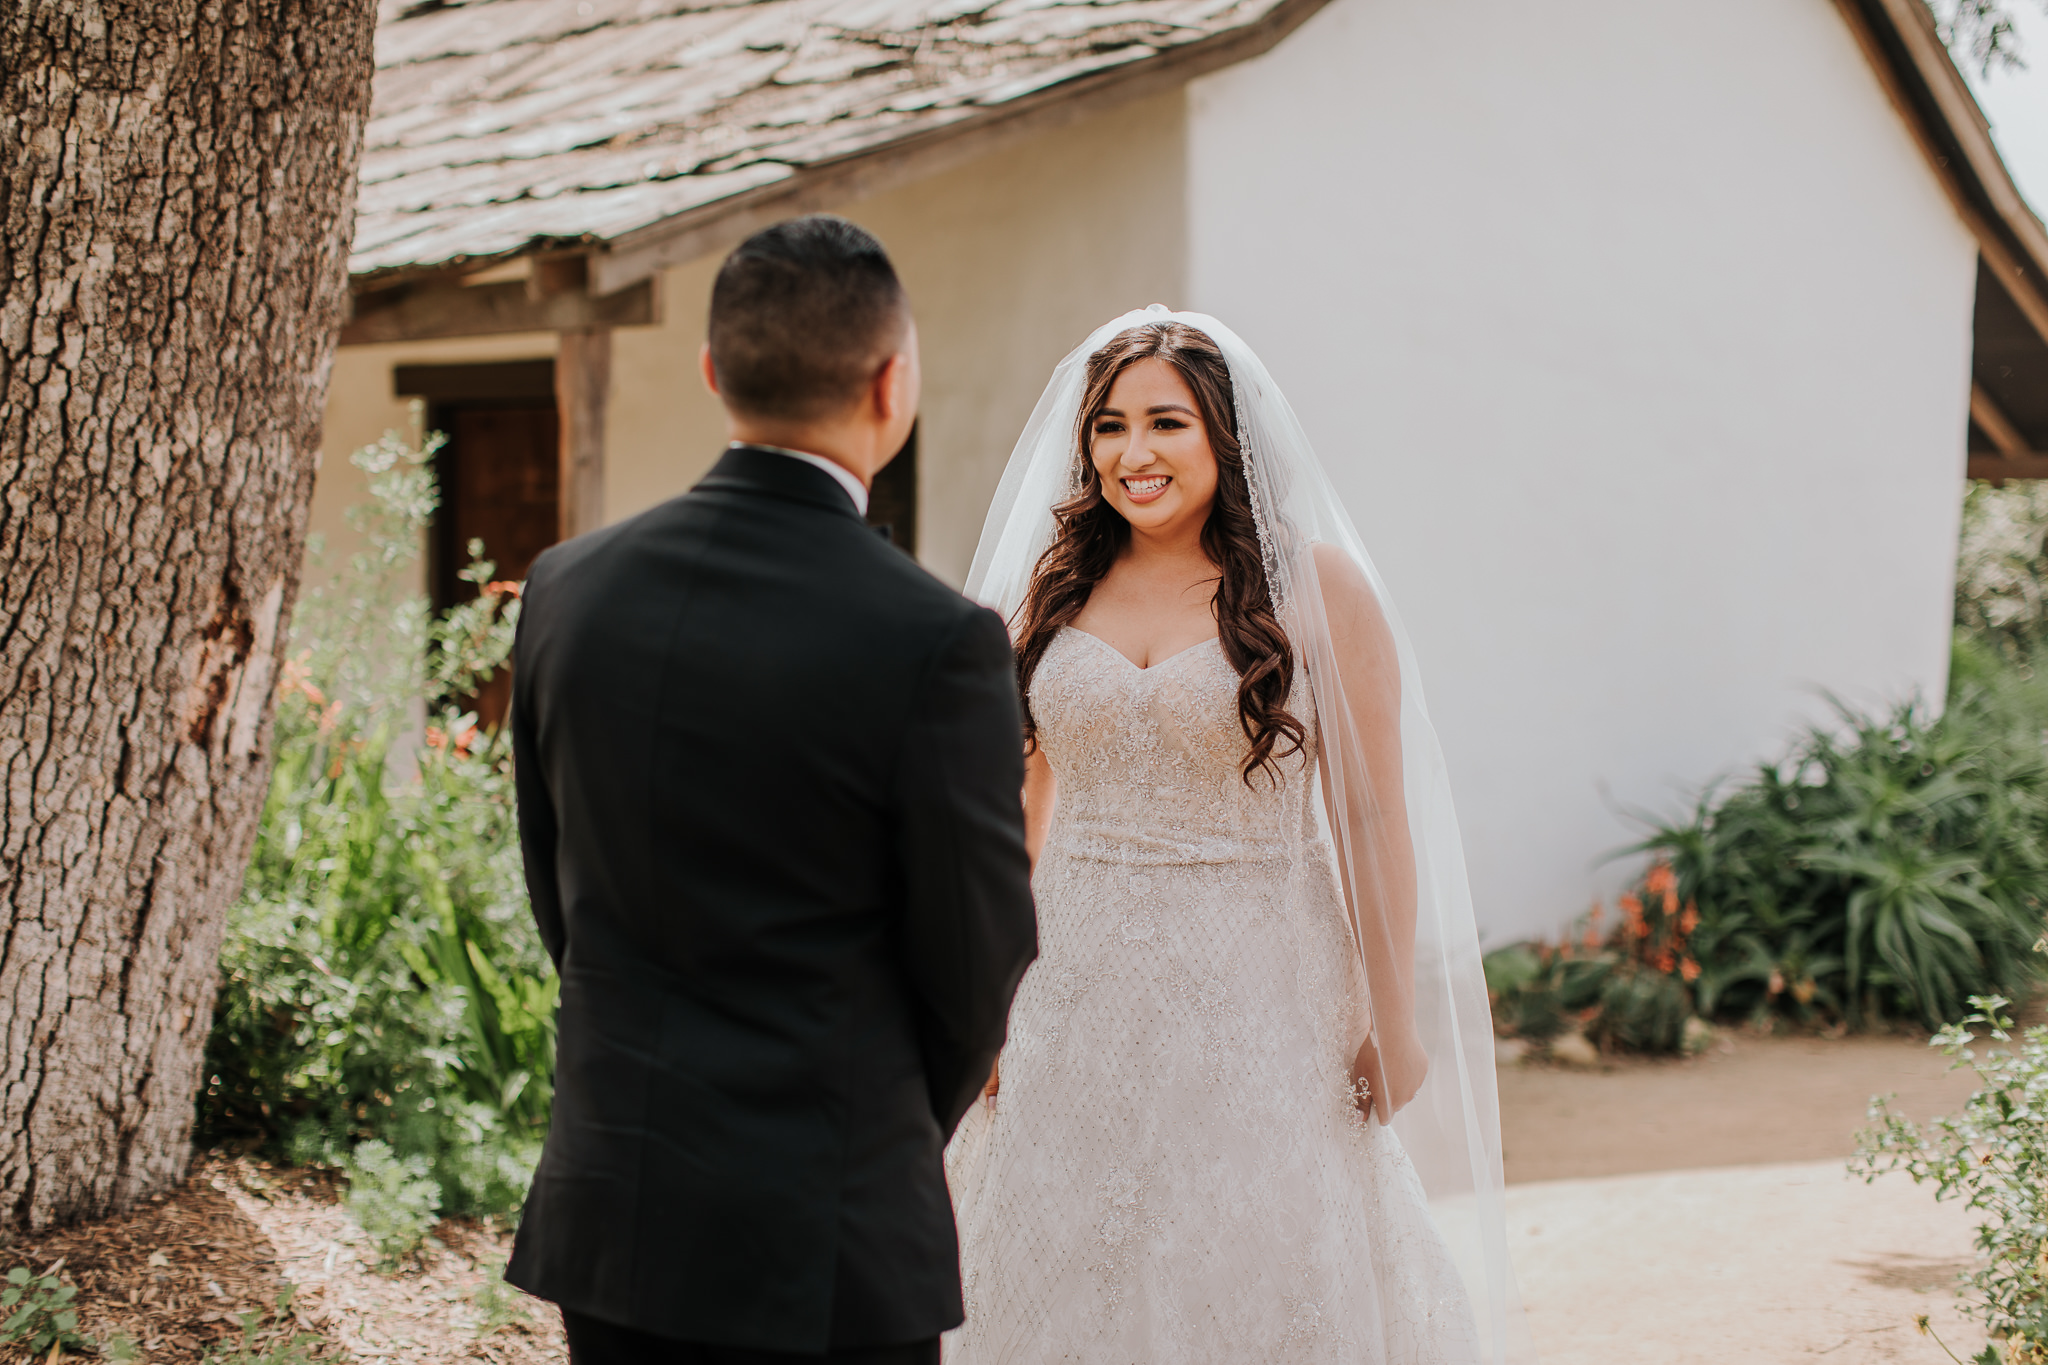 2019-04-05_Brittany_and_Nick_-_Married_-_San_Juan_Capistrano-32.jpg